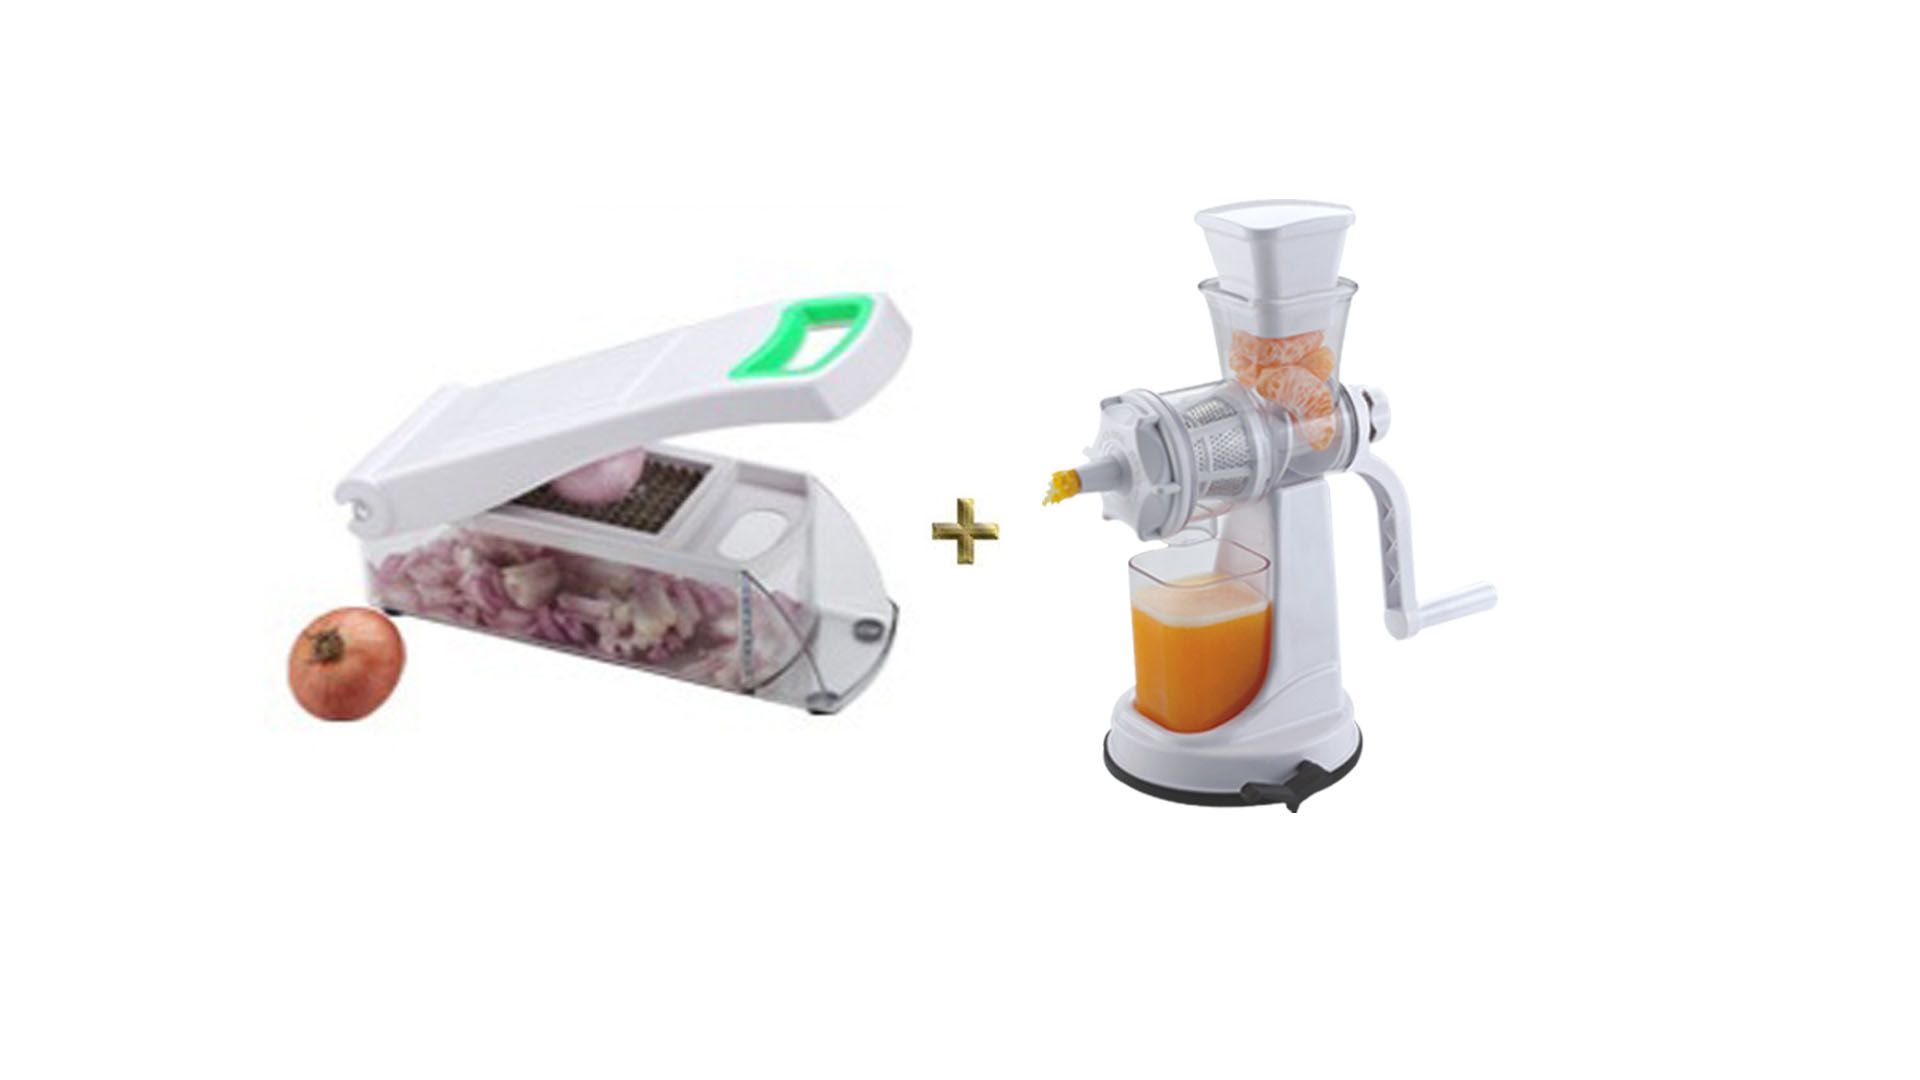 Onion And Vegetable Chopper, Cutter And Fruit Juicer Combo Offer [CLONE]